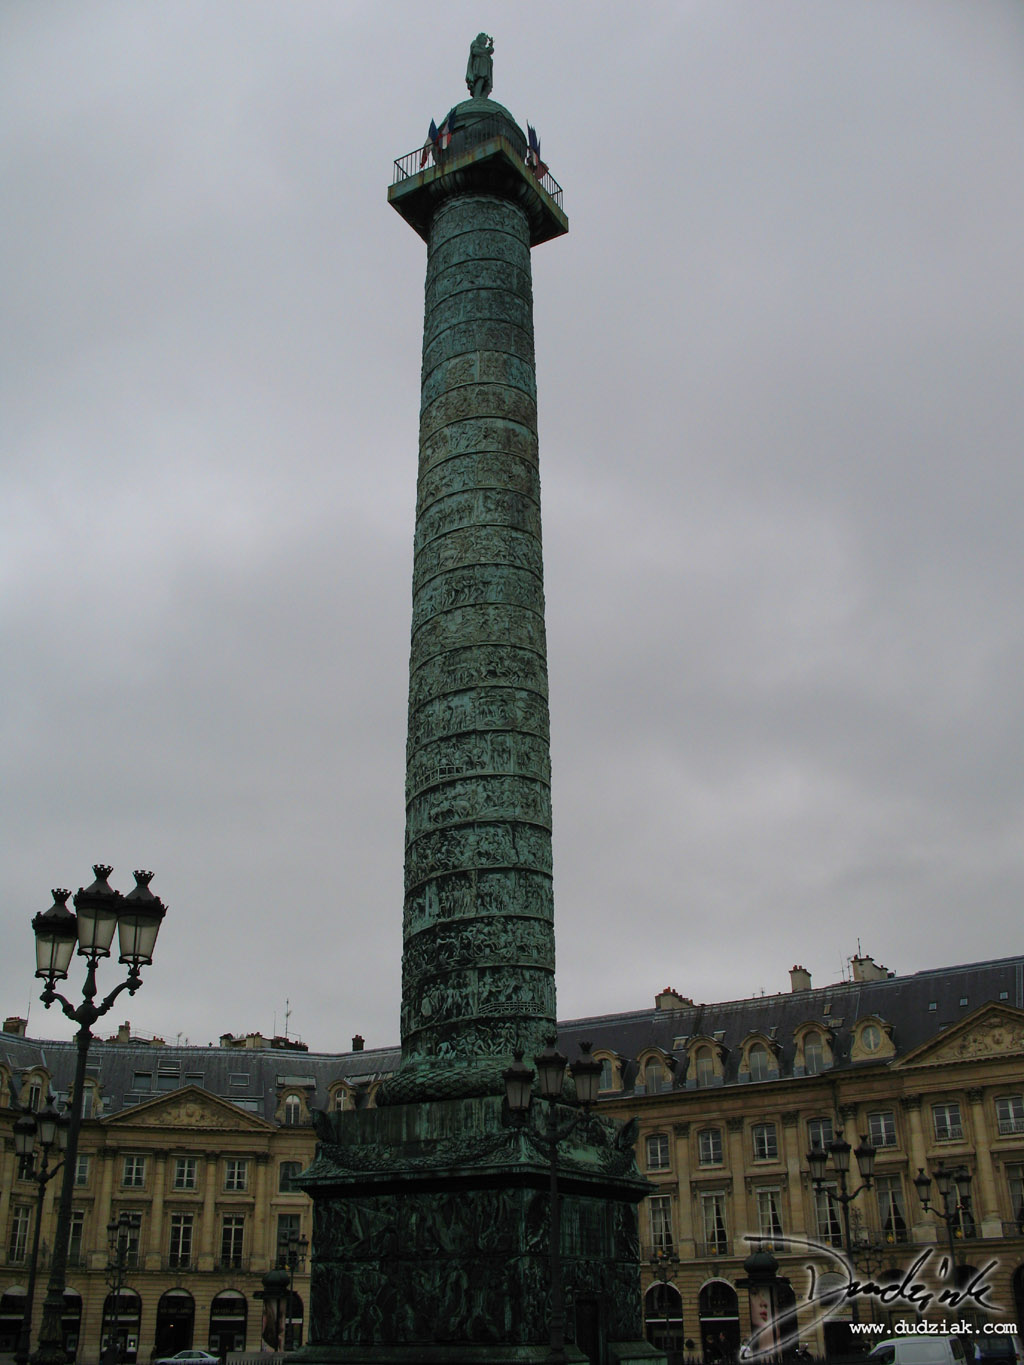 Paris,  Place Vendome Column,  Place Vendome,  Column